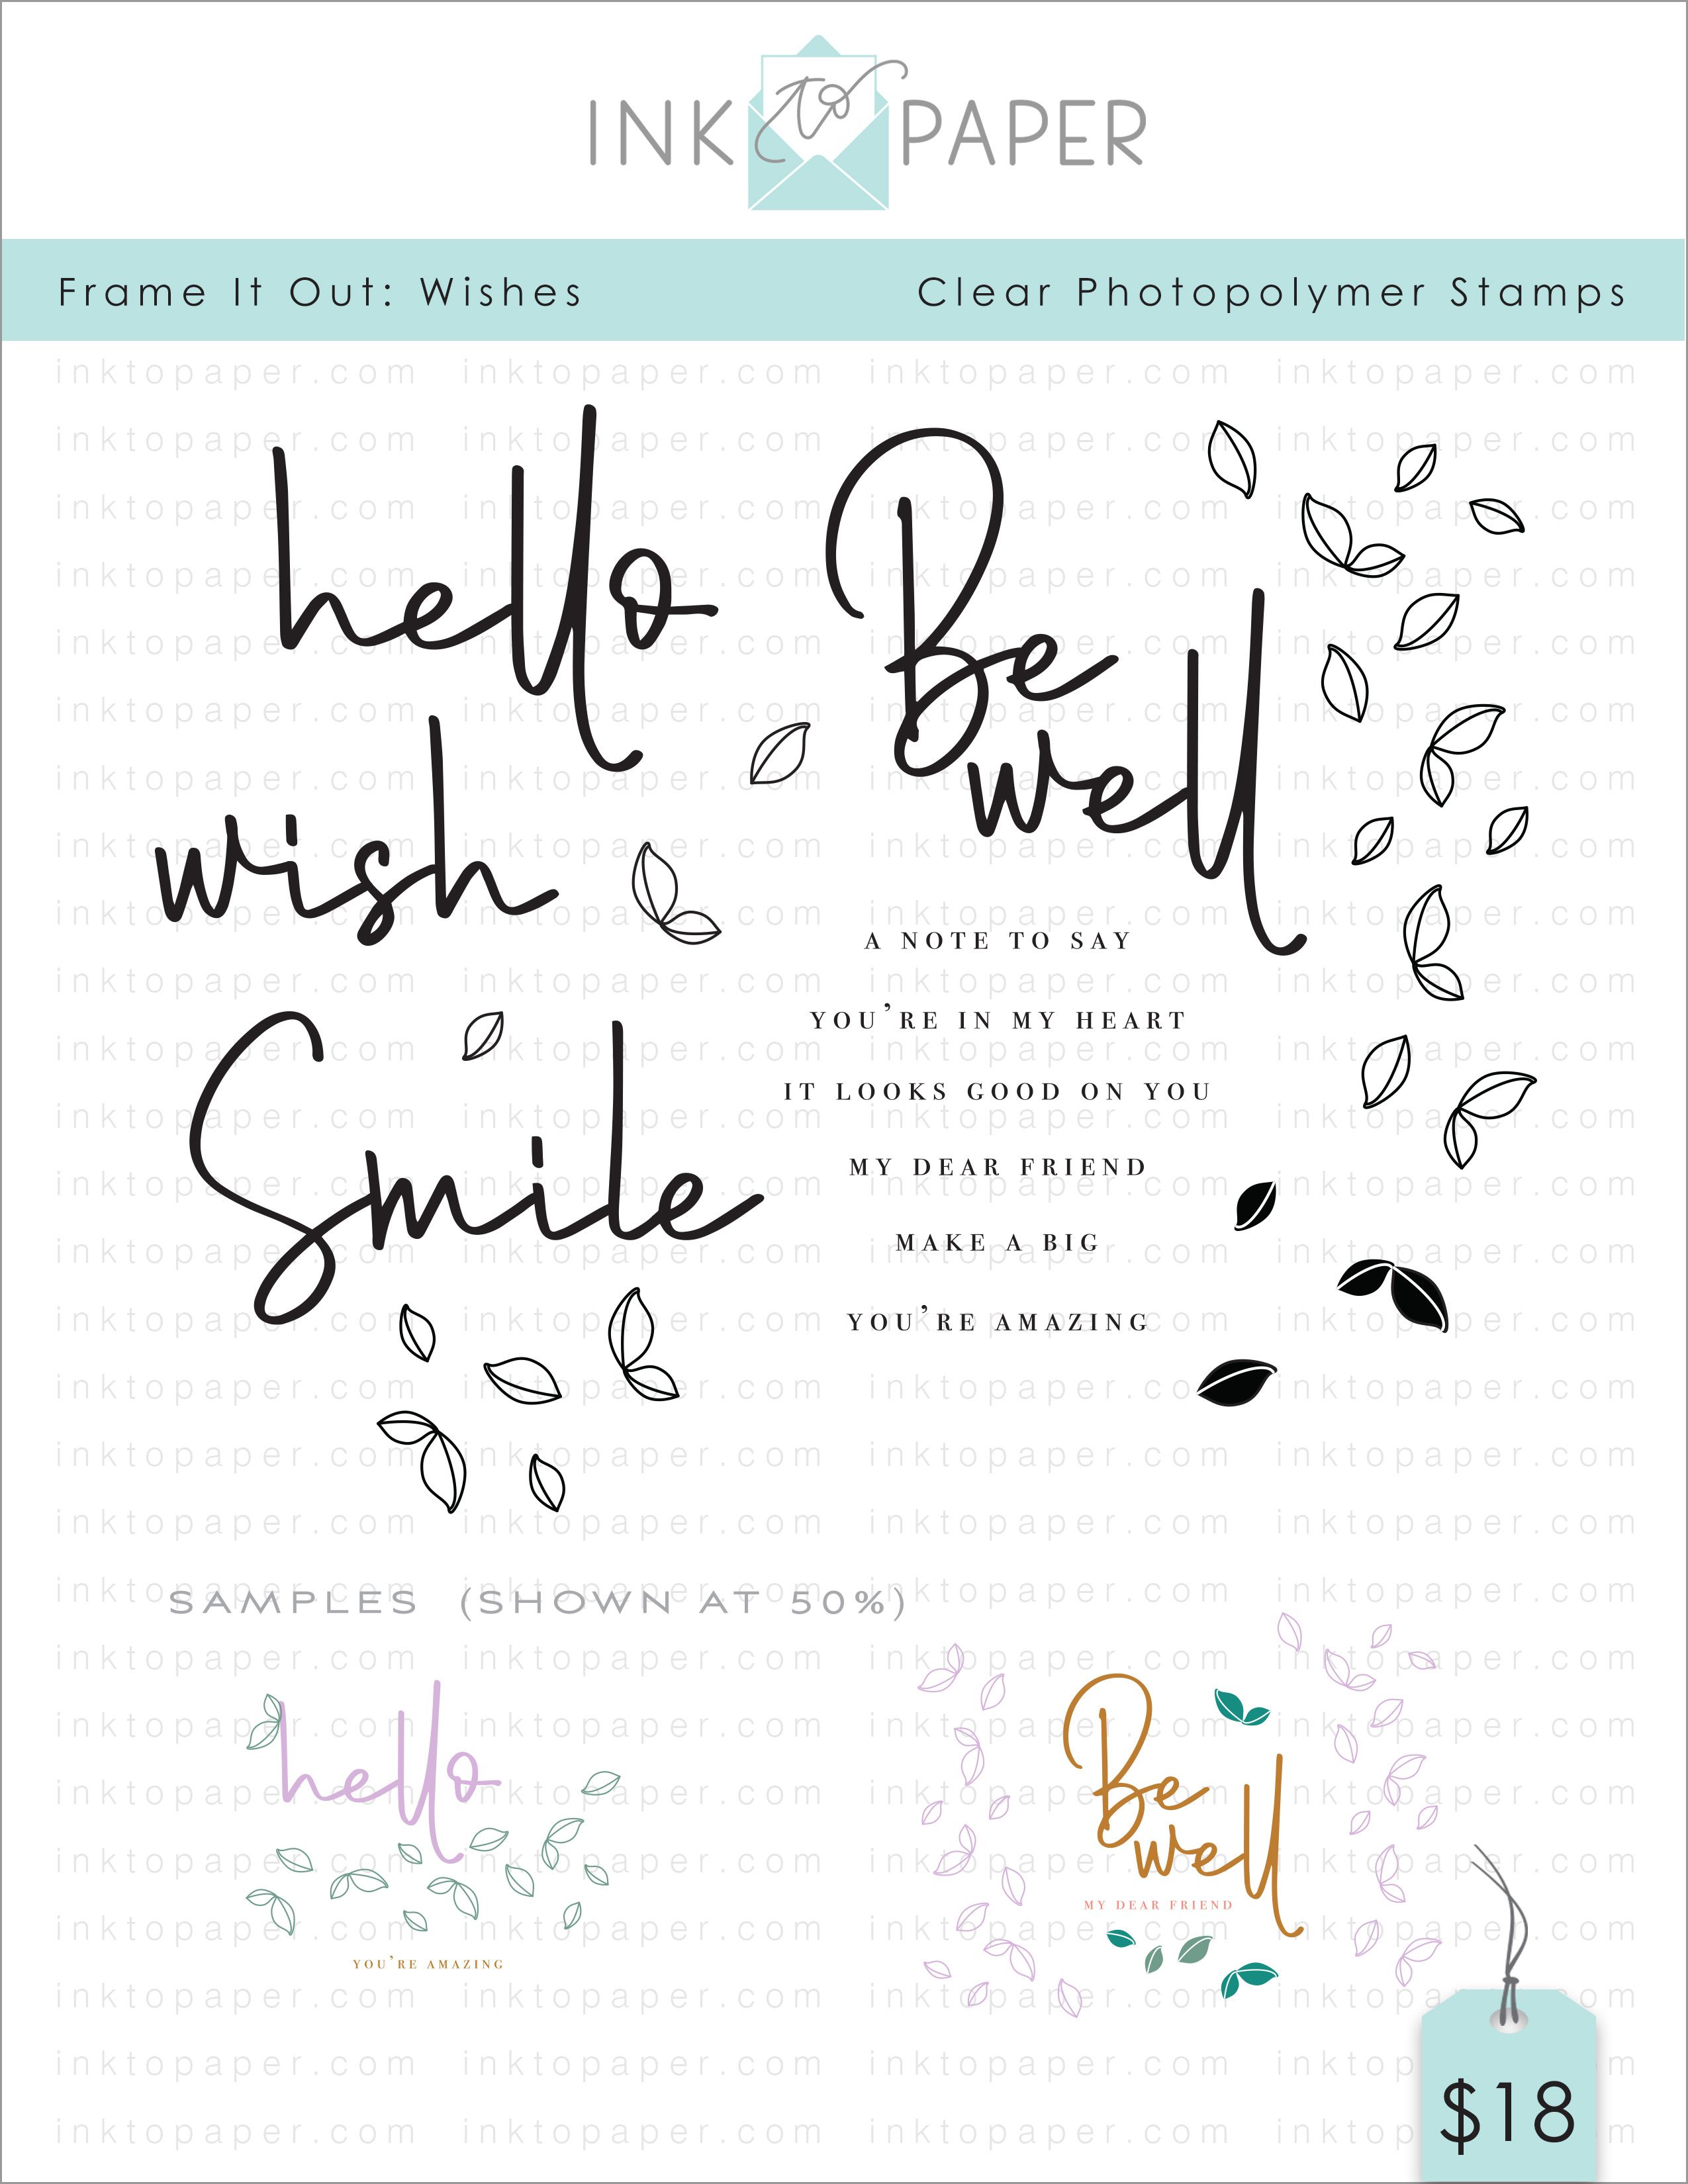 Ink-to-Paper_May-2019_Frame-It-Out-Wishes_stamp-set-blog